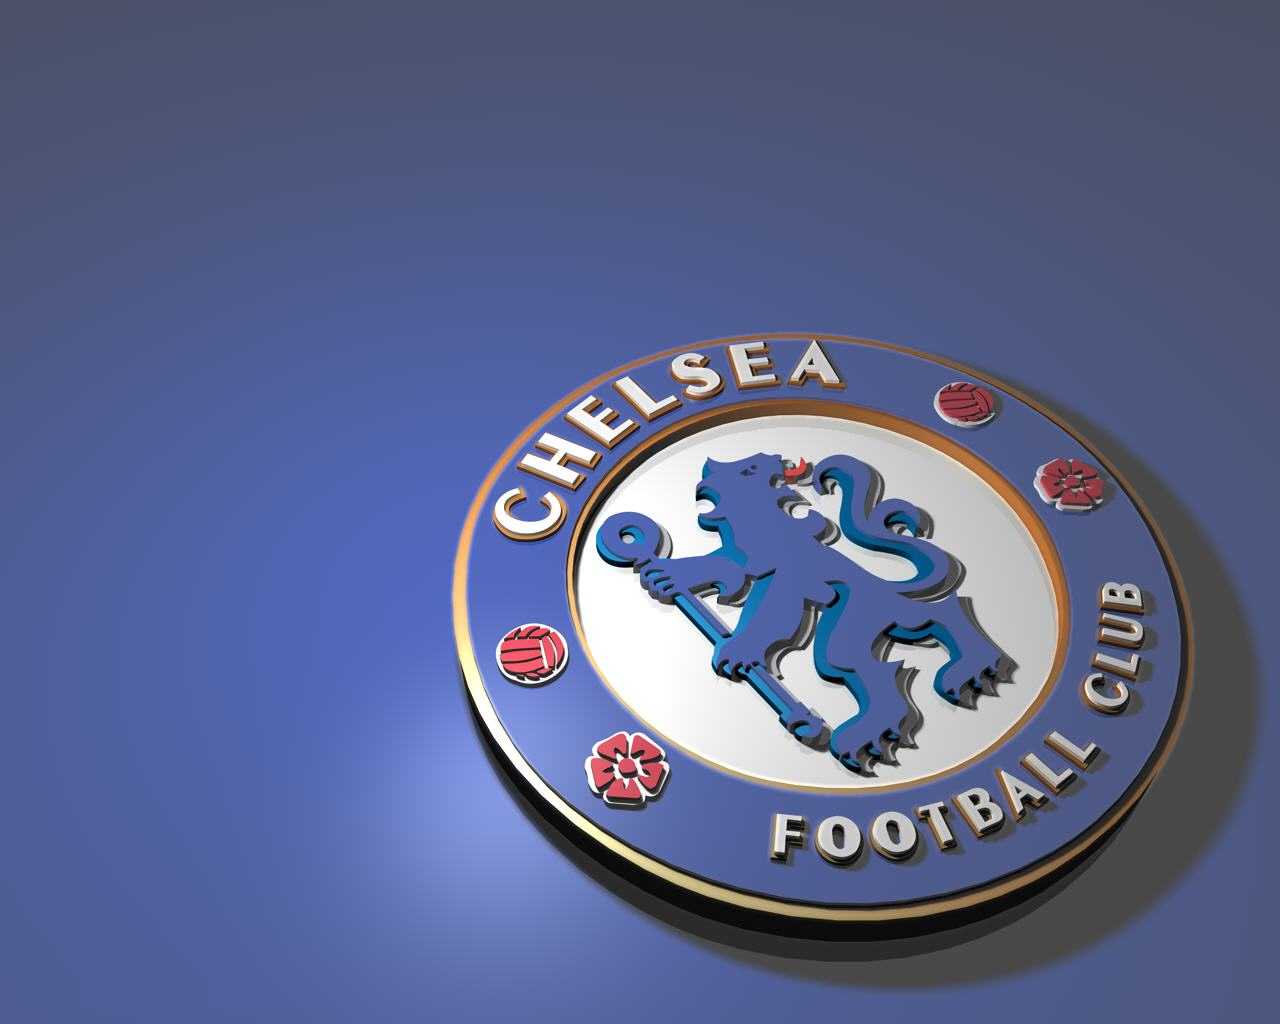 World Sports Hd Wallpapers Chelsea Fc Hd Wallpapers 1280x1024